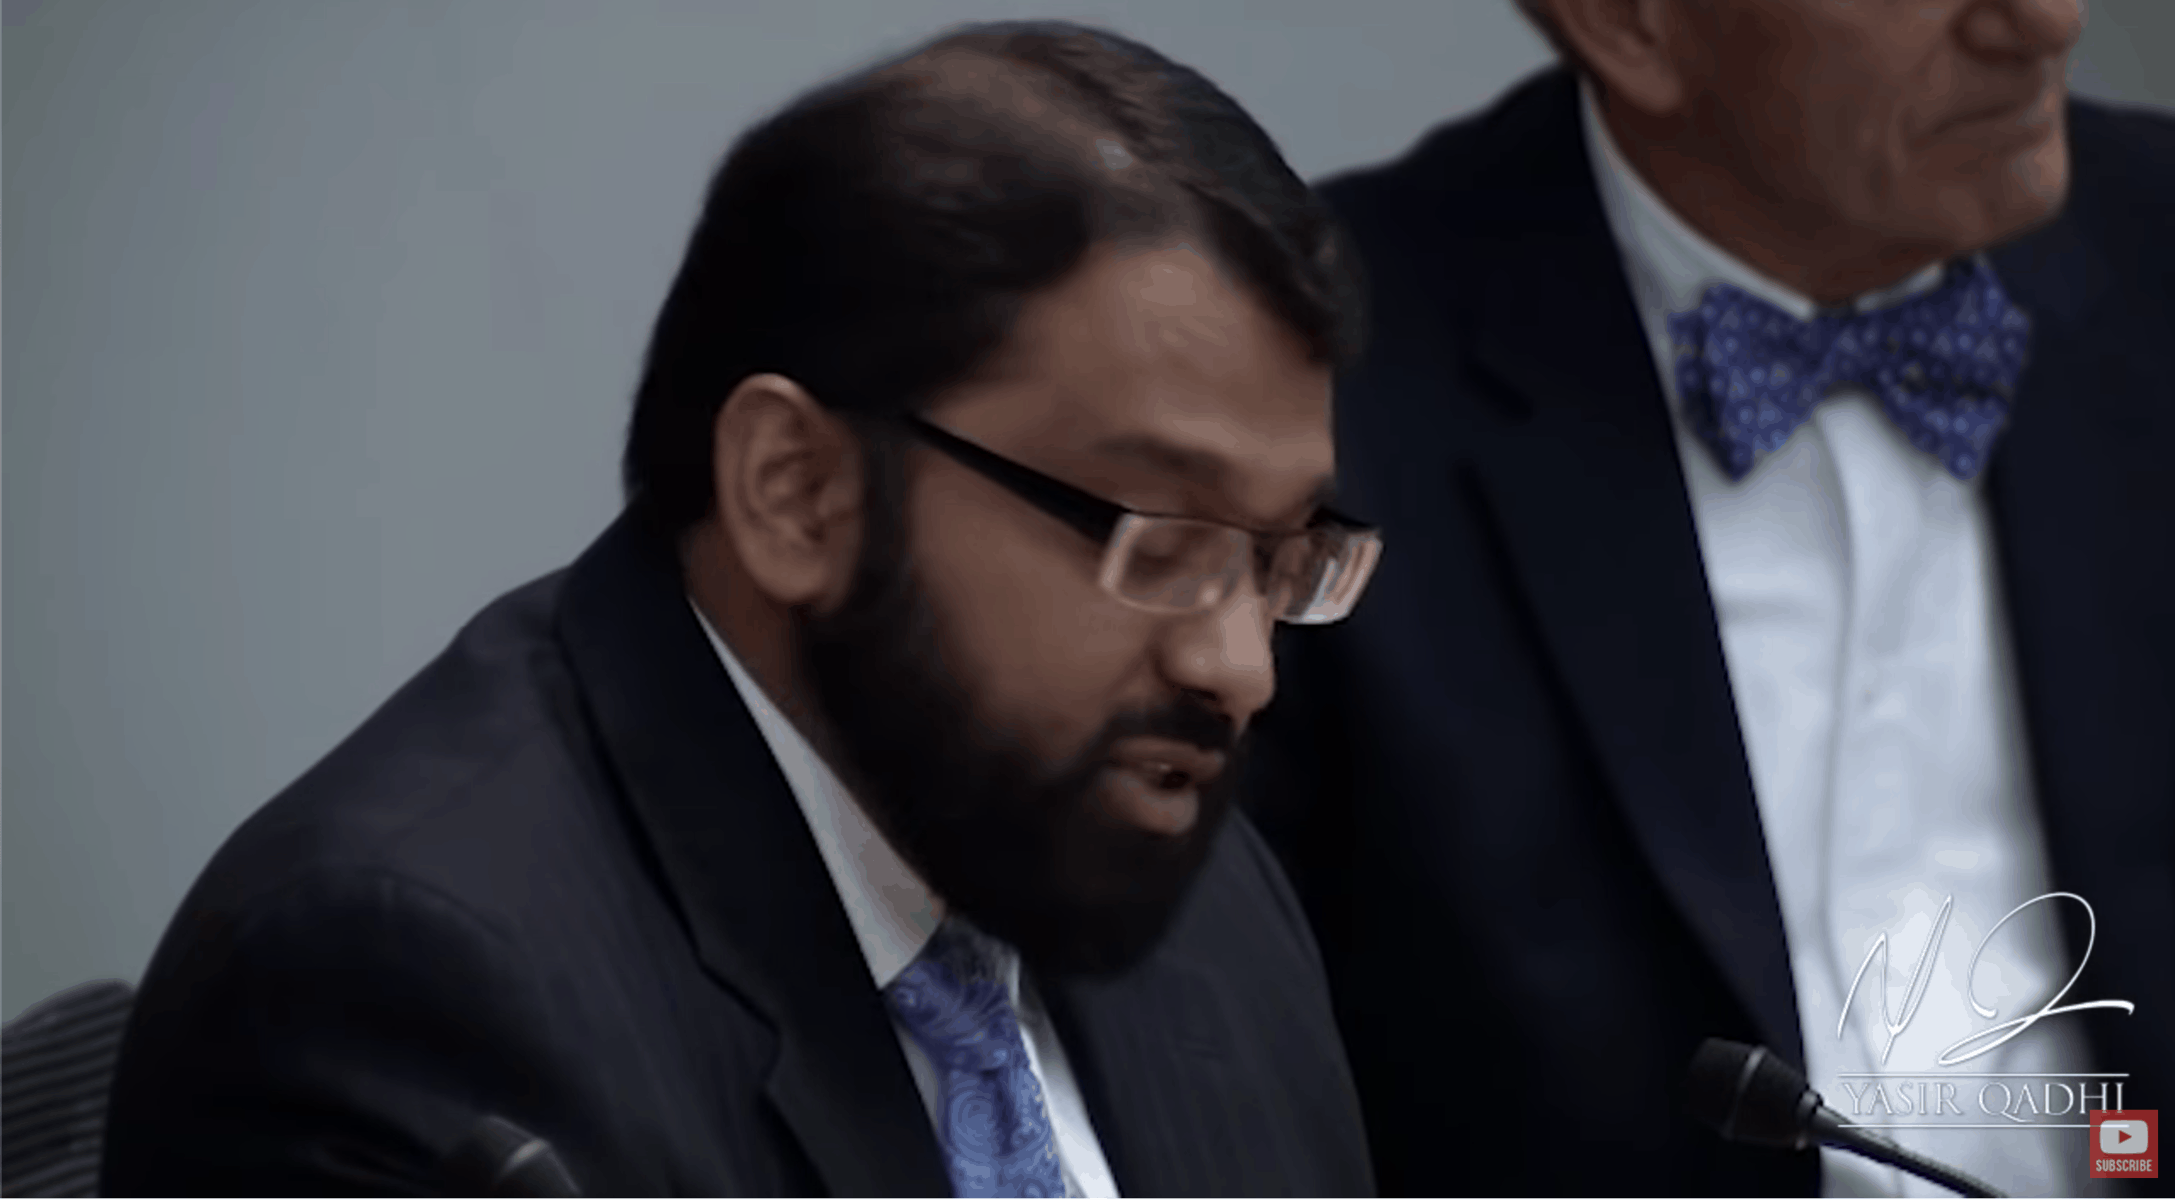 Yasir Qadhi – Religious Freedom and its Implications